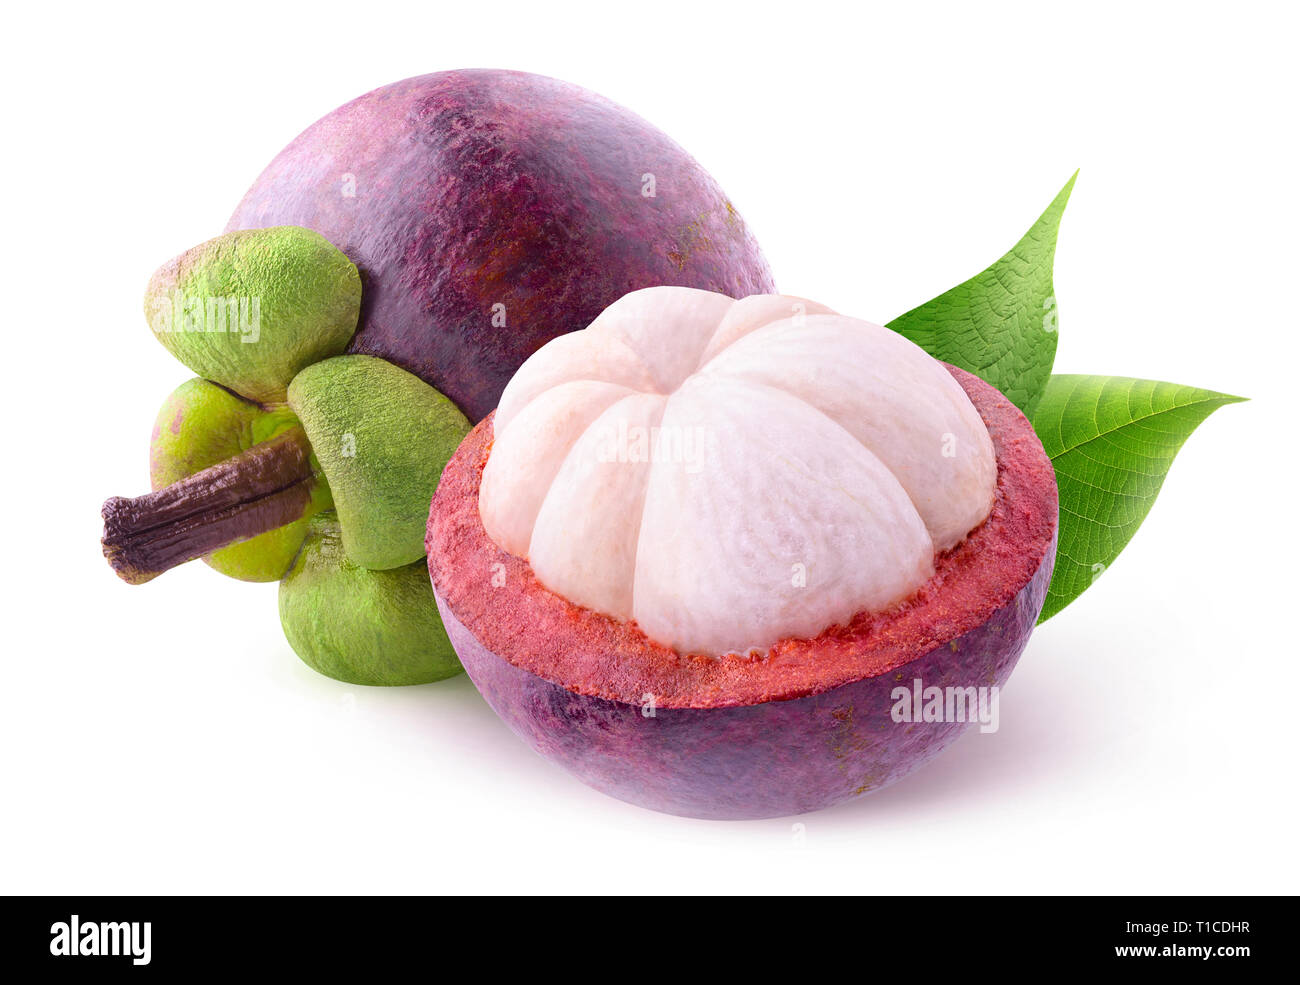 Isolated tropical fruits. One and a half cut mangosteens isolated on white background with clipping path Stock Photo